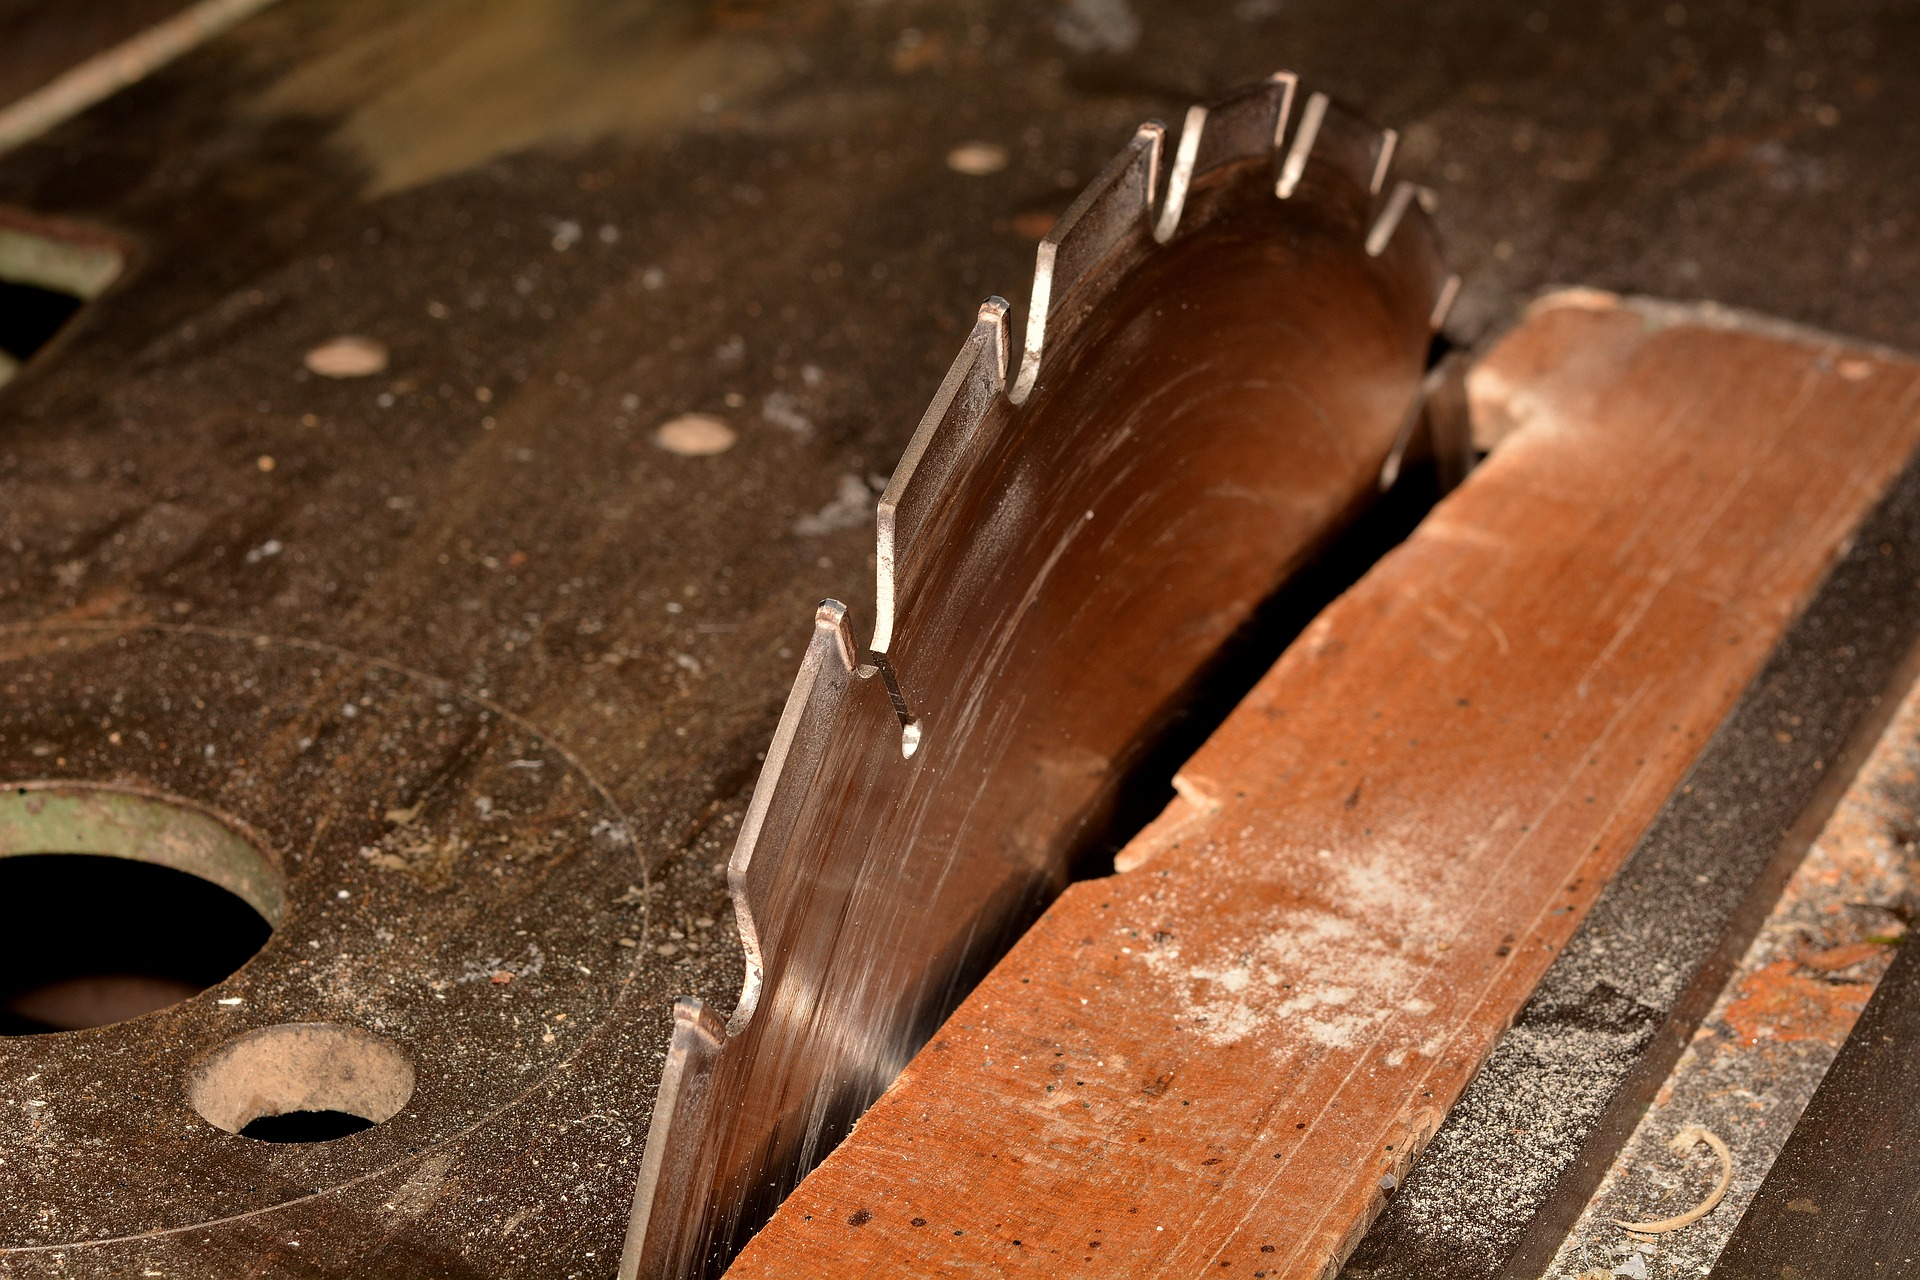 Best table saw for fine woodworking